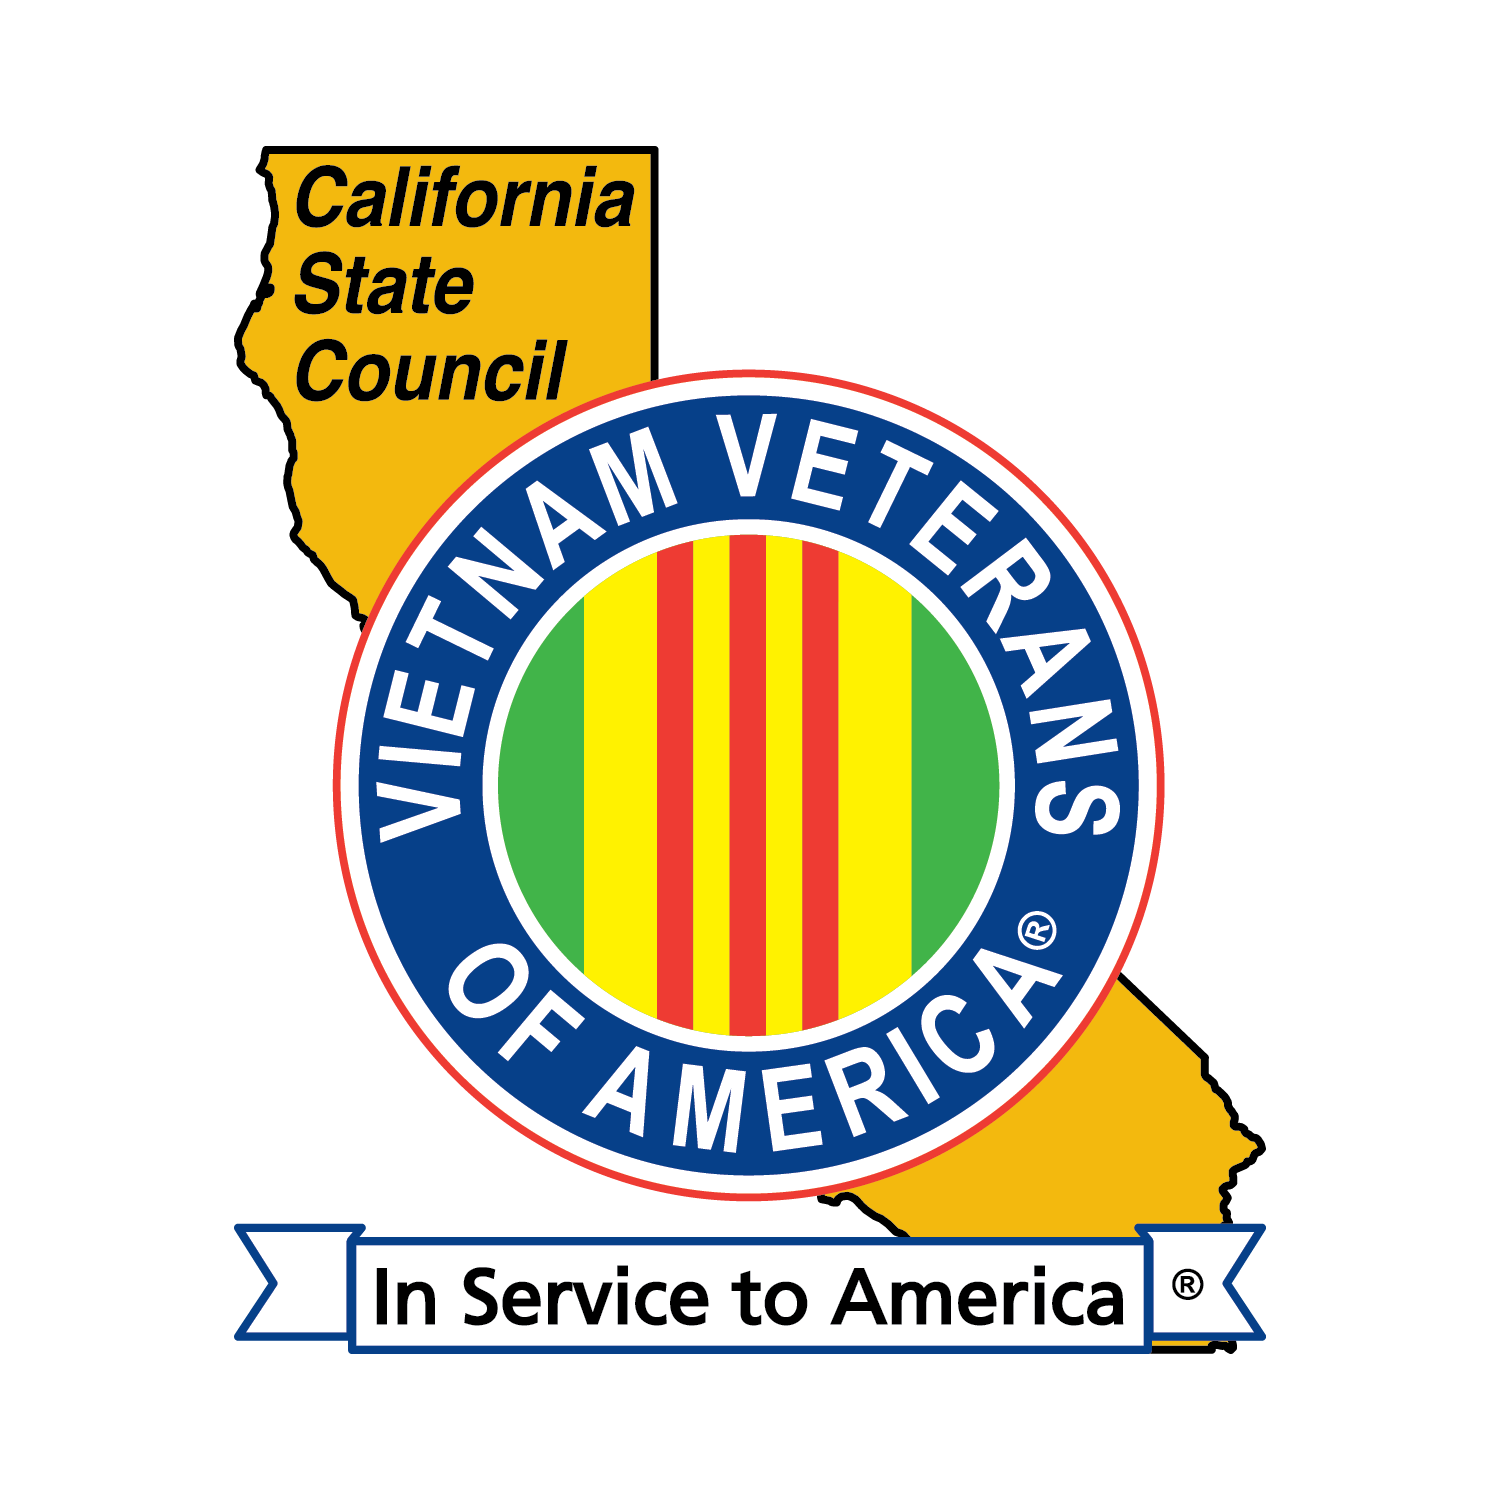 Vietnam Veterans of America, California State Council